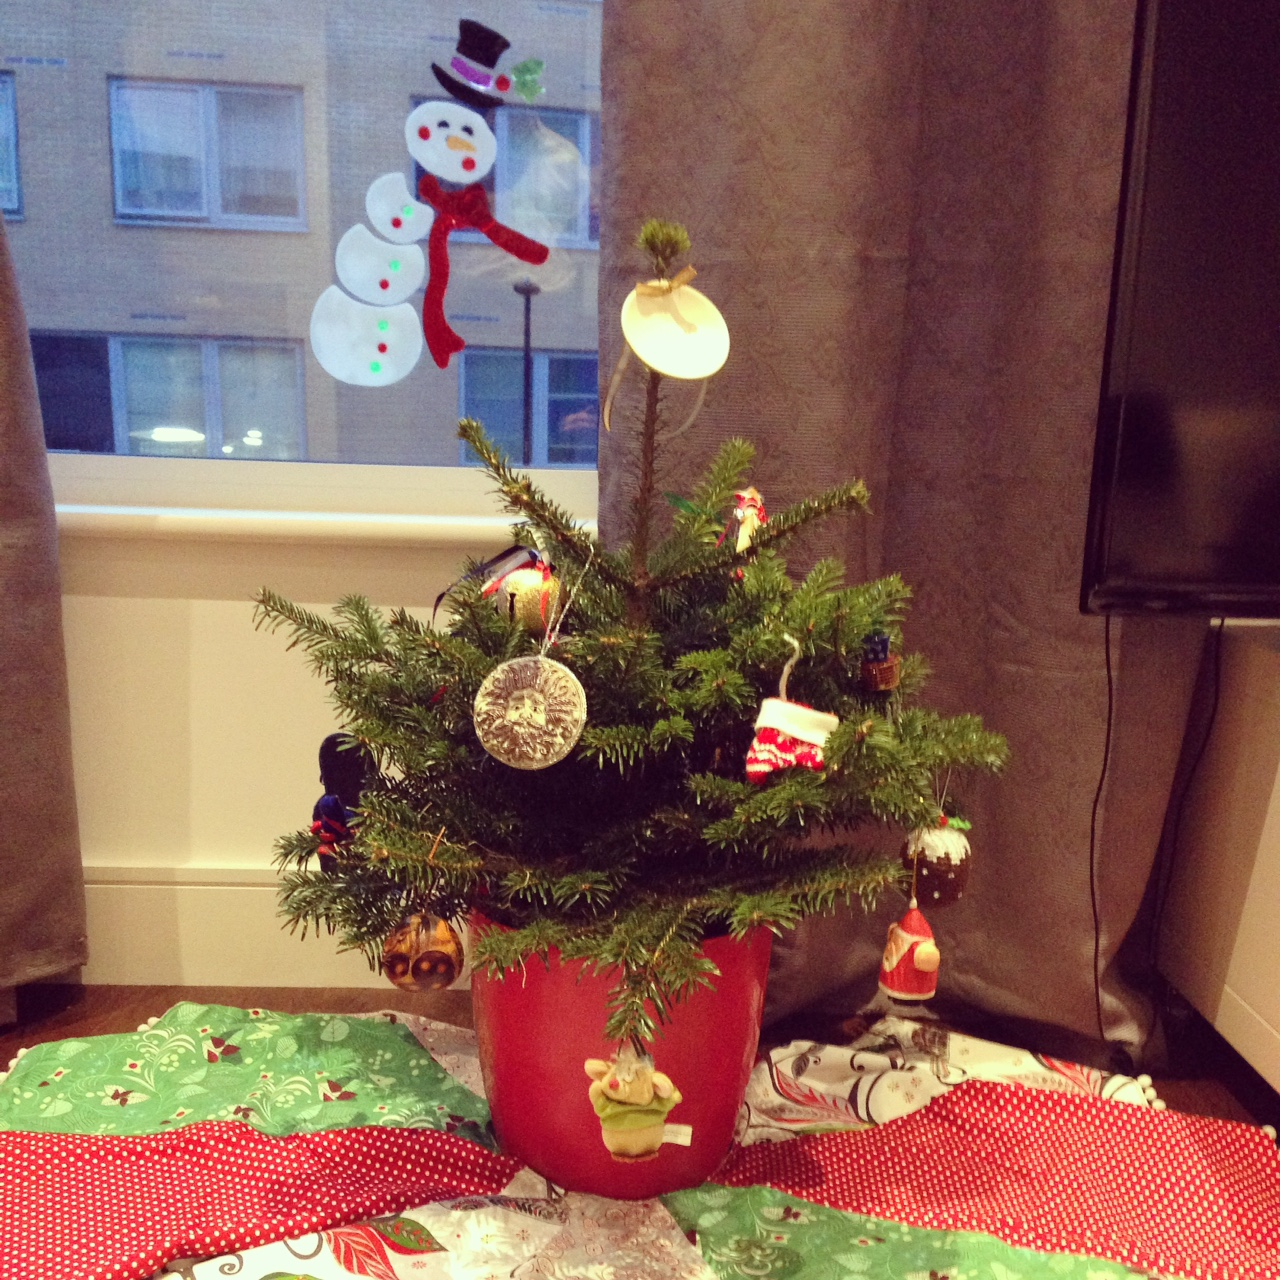 Christmas Tree For 2014: 5 Kitchen Stocking Stuffers